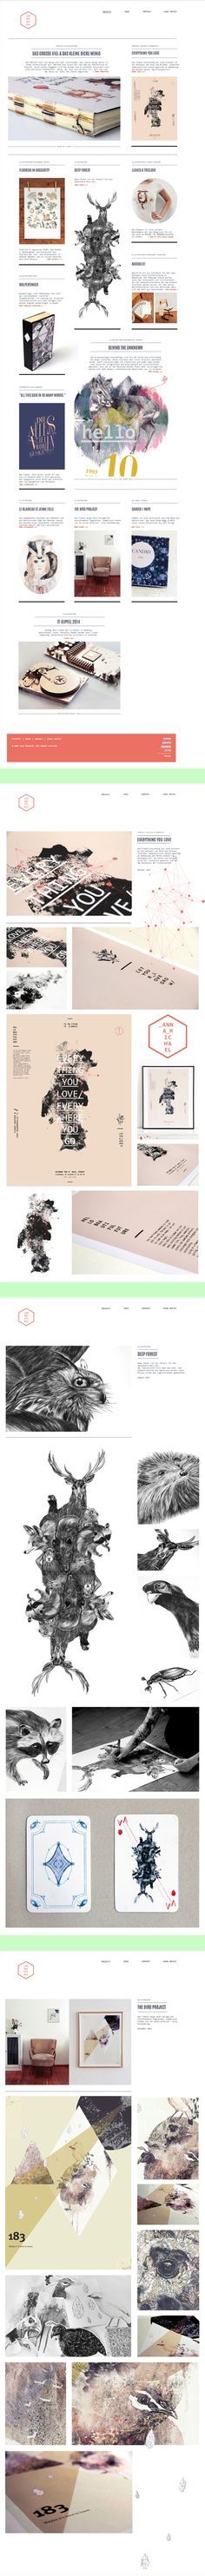 Personal webdesign | Lara Bispinck by Lara Bispinck, via Behance